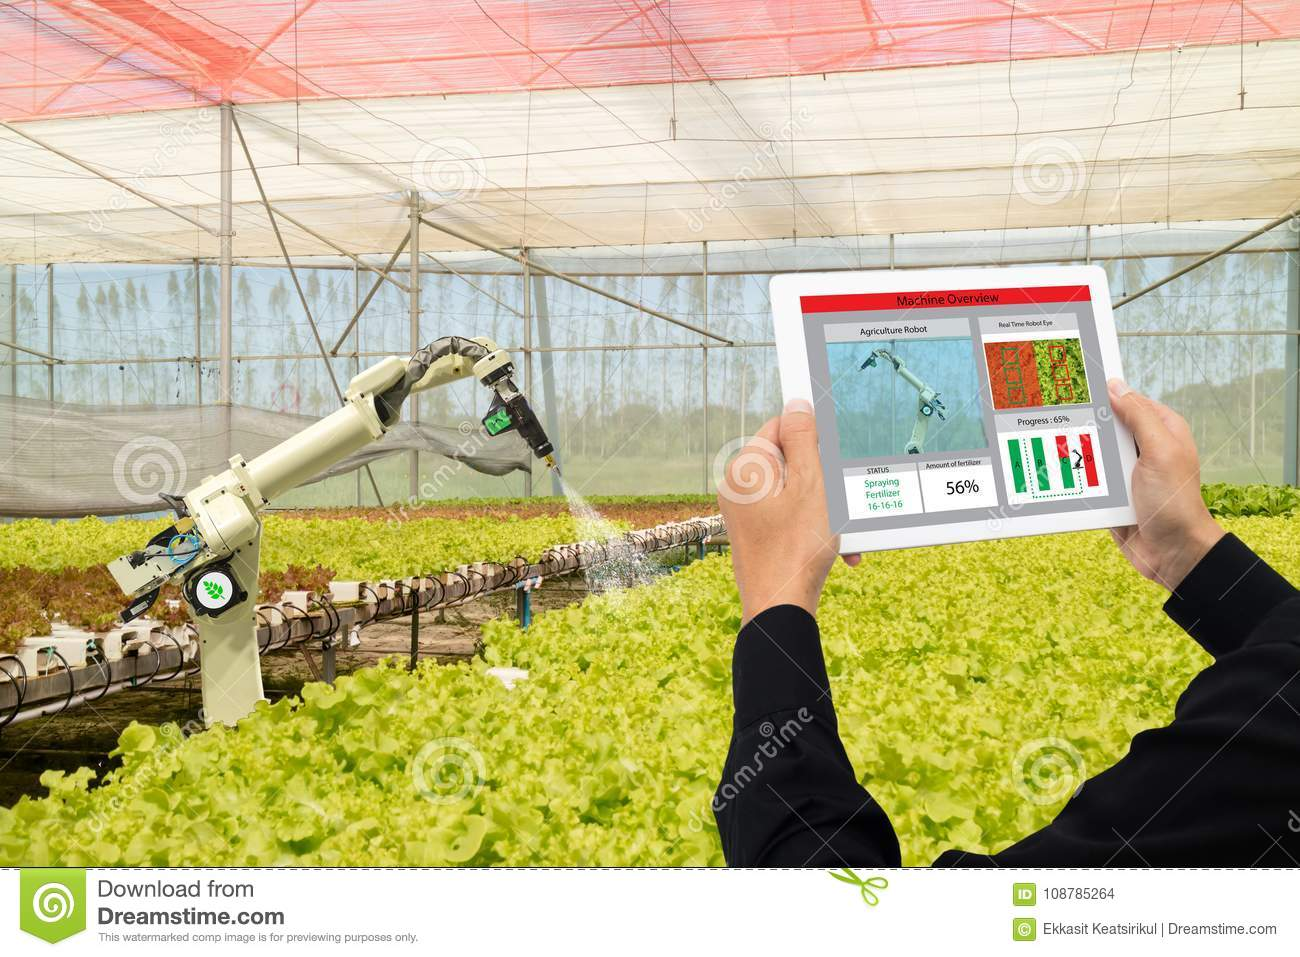 Iot smart industry robot 4.0 agriculture concept,industrial agronomist,farmer using software Artificial intelligence technology in